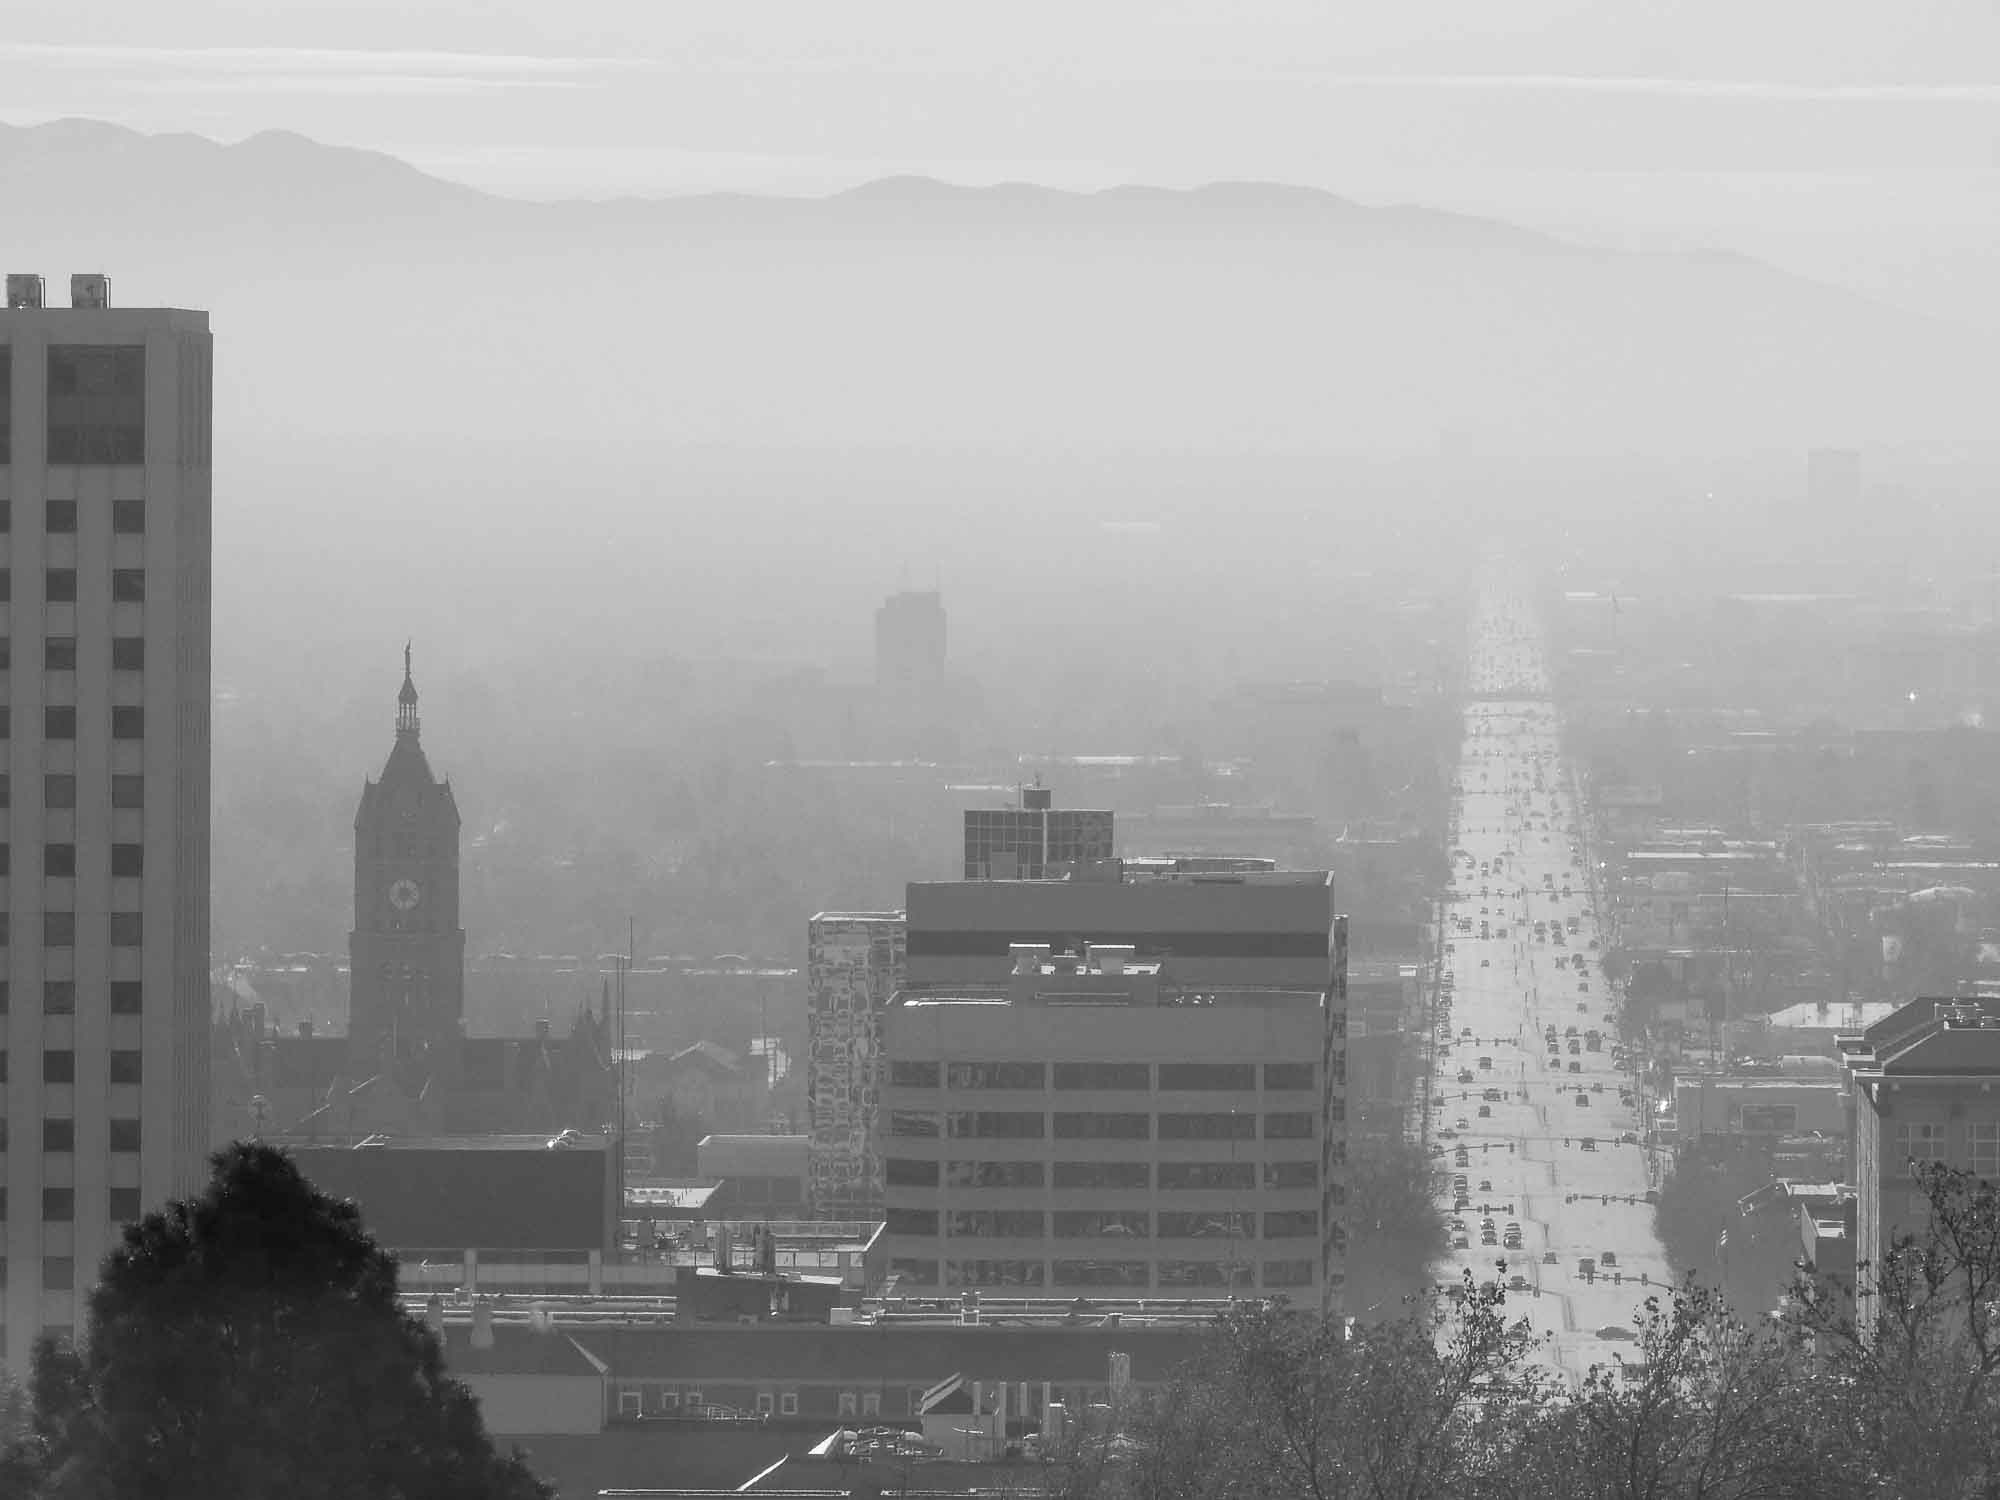 inversion pollution in salt lake city